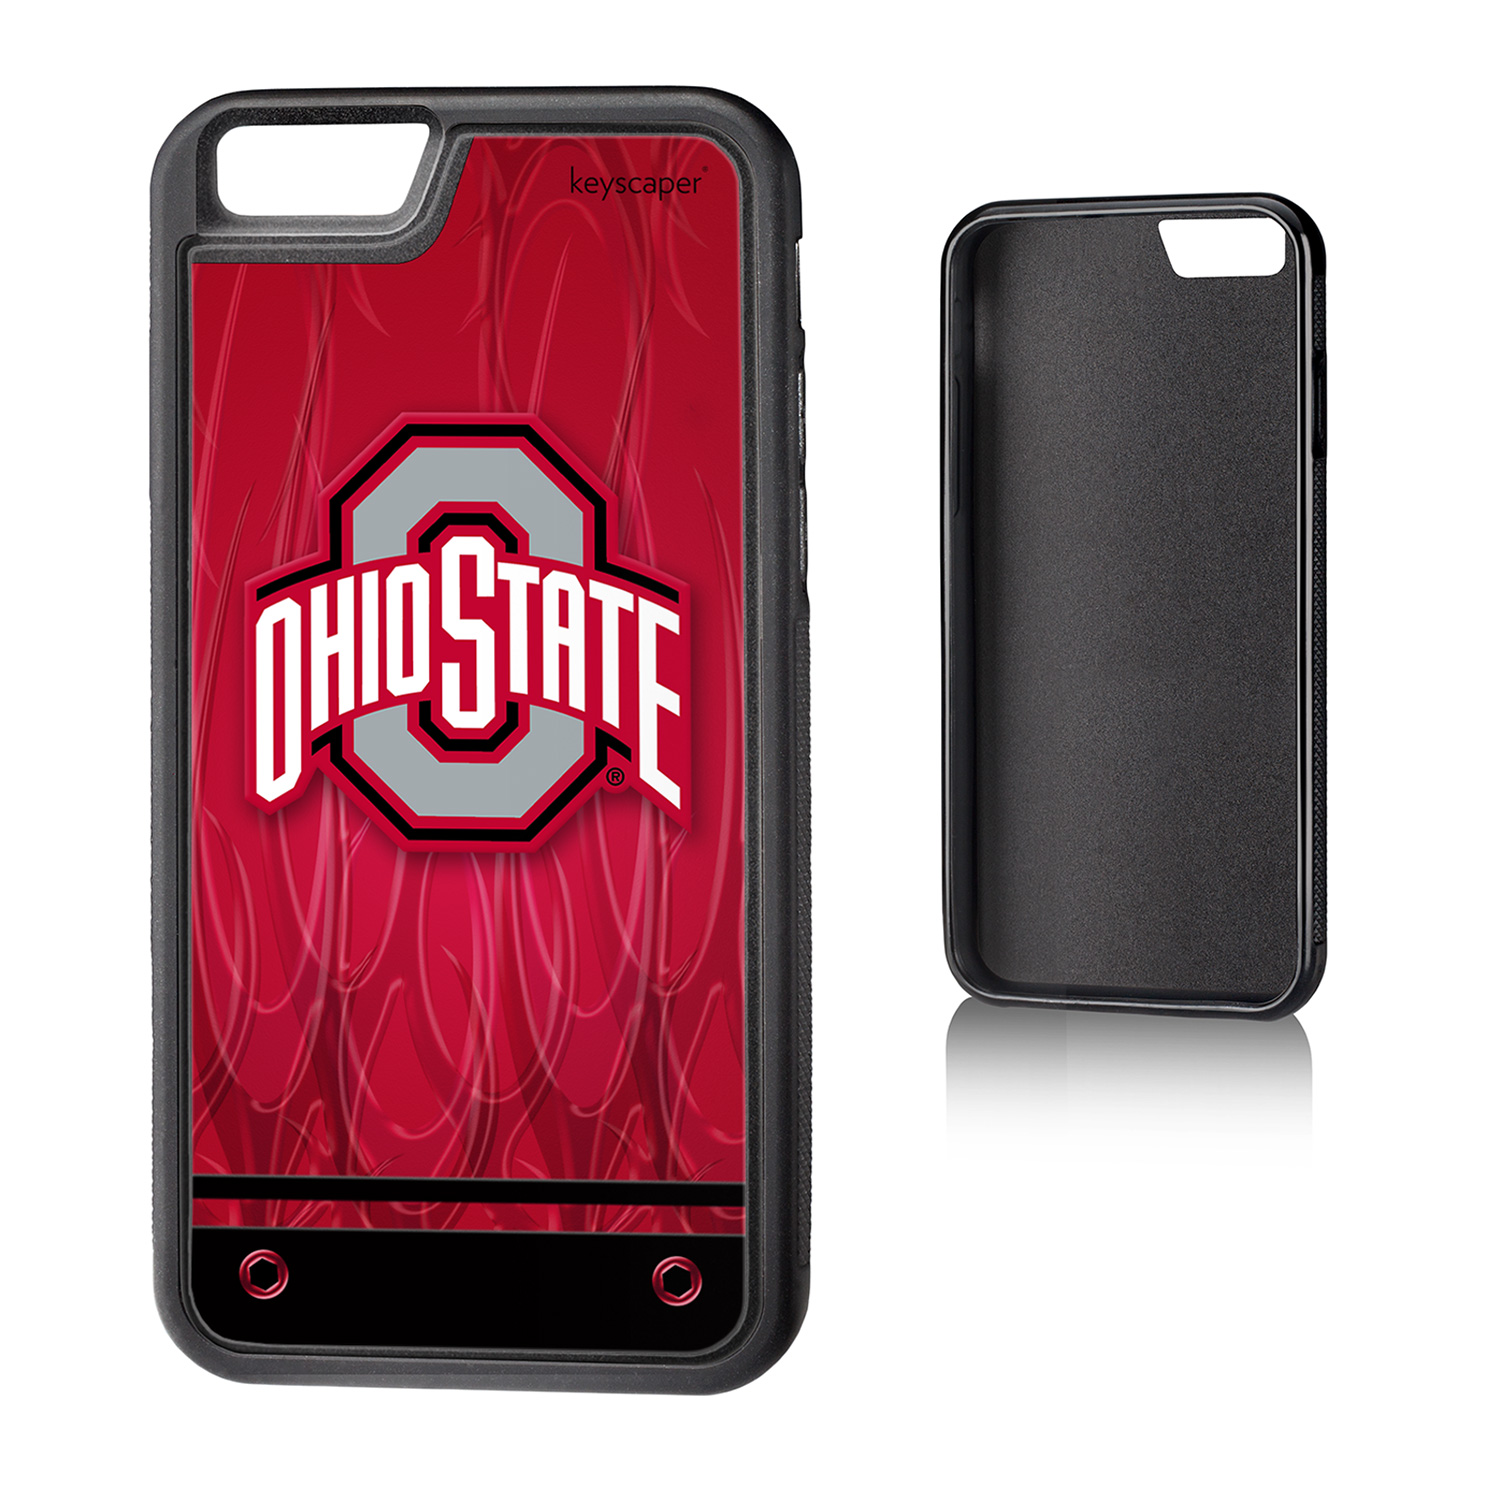 Ohio State Buckeyes iPhone 6 (4.7 inch) Bumper Case